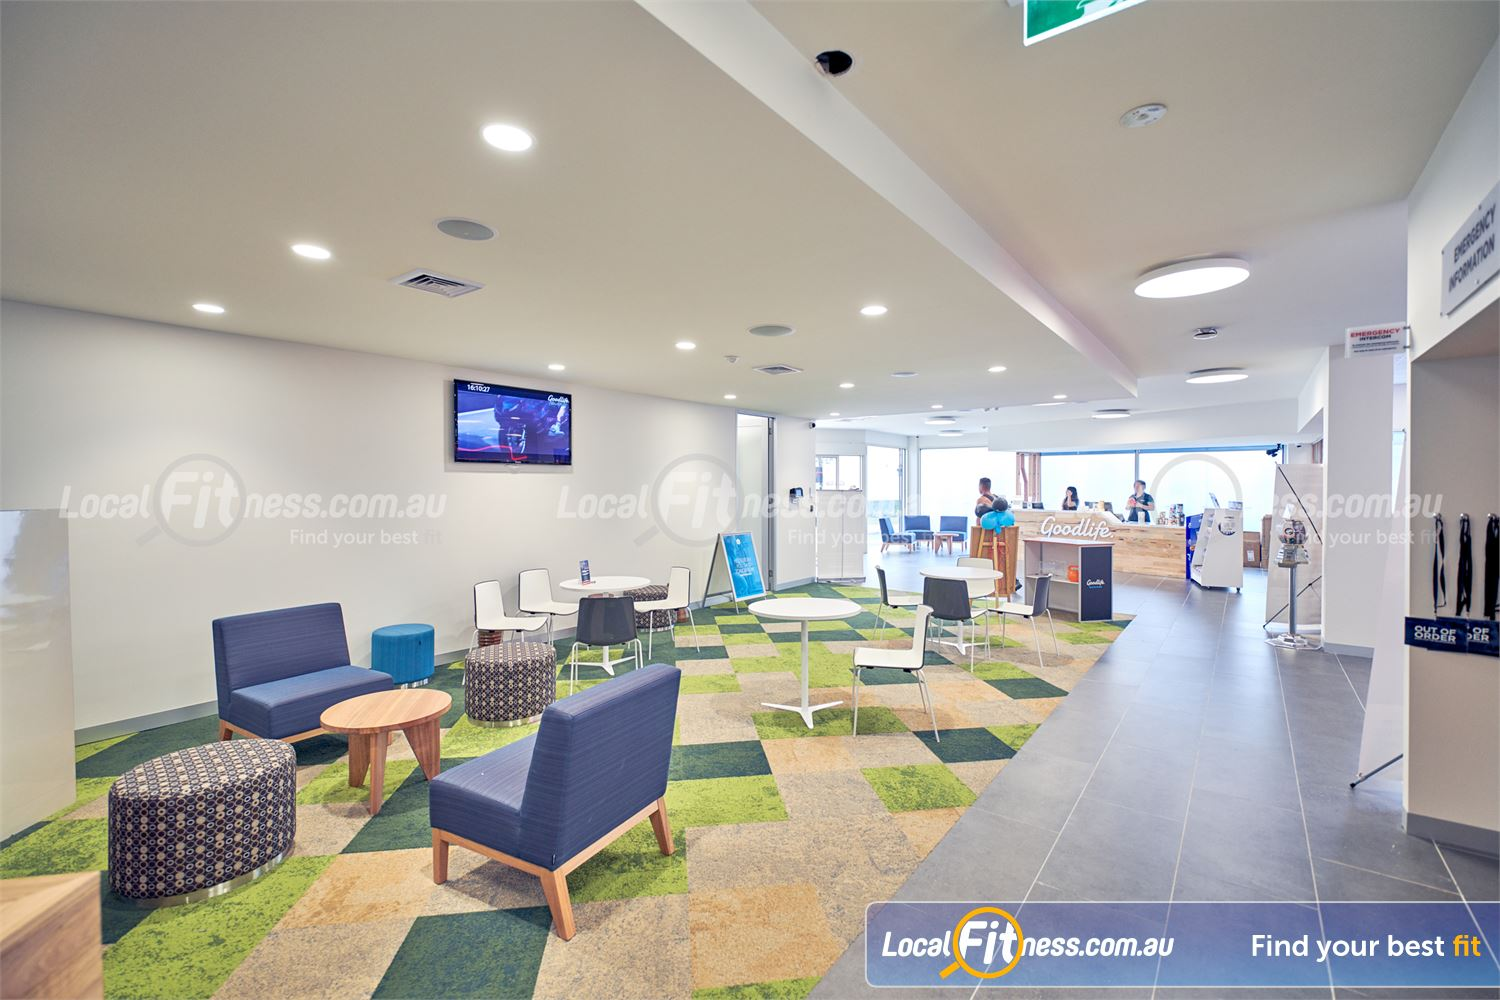 Goodlife Health Clubs Knox City Near Scoresby Our lush members lounge area at Goodlife Knox City.